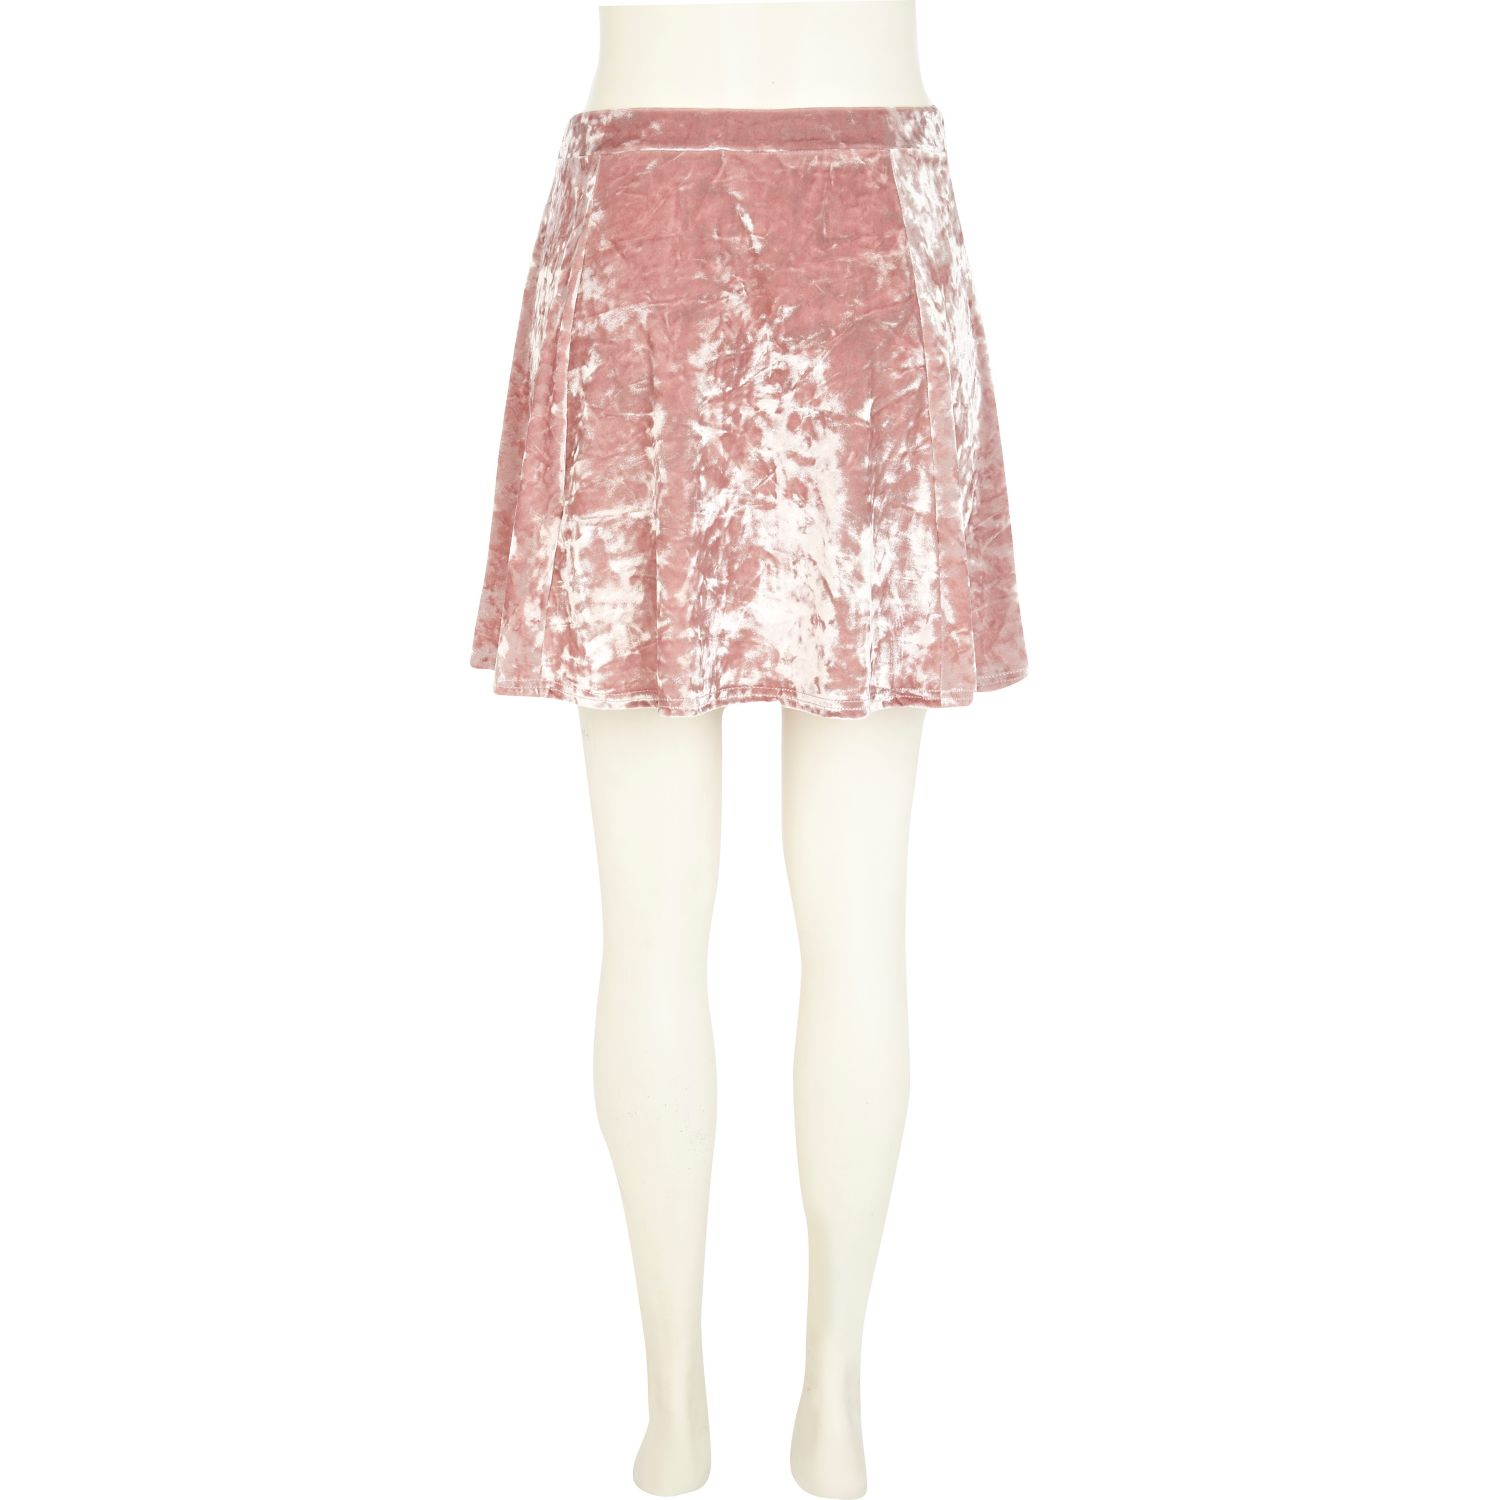 39e48e8f0 River Island Light Pink Crushed Velvet Skater Skirt in Pink - Lyst